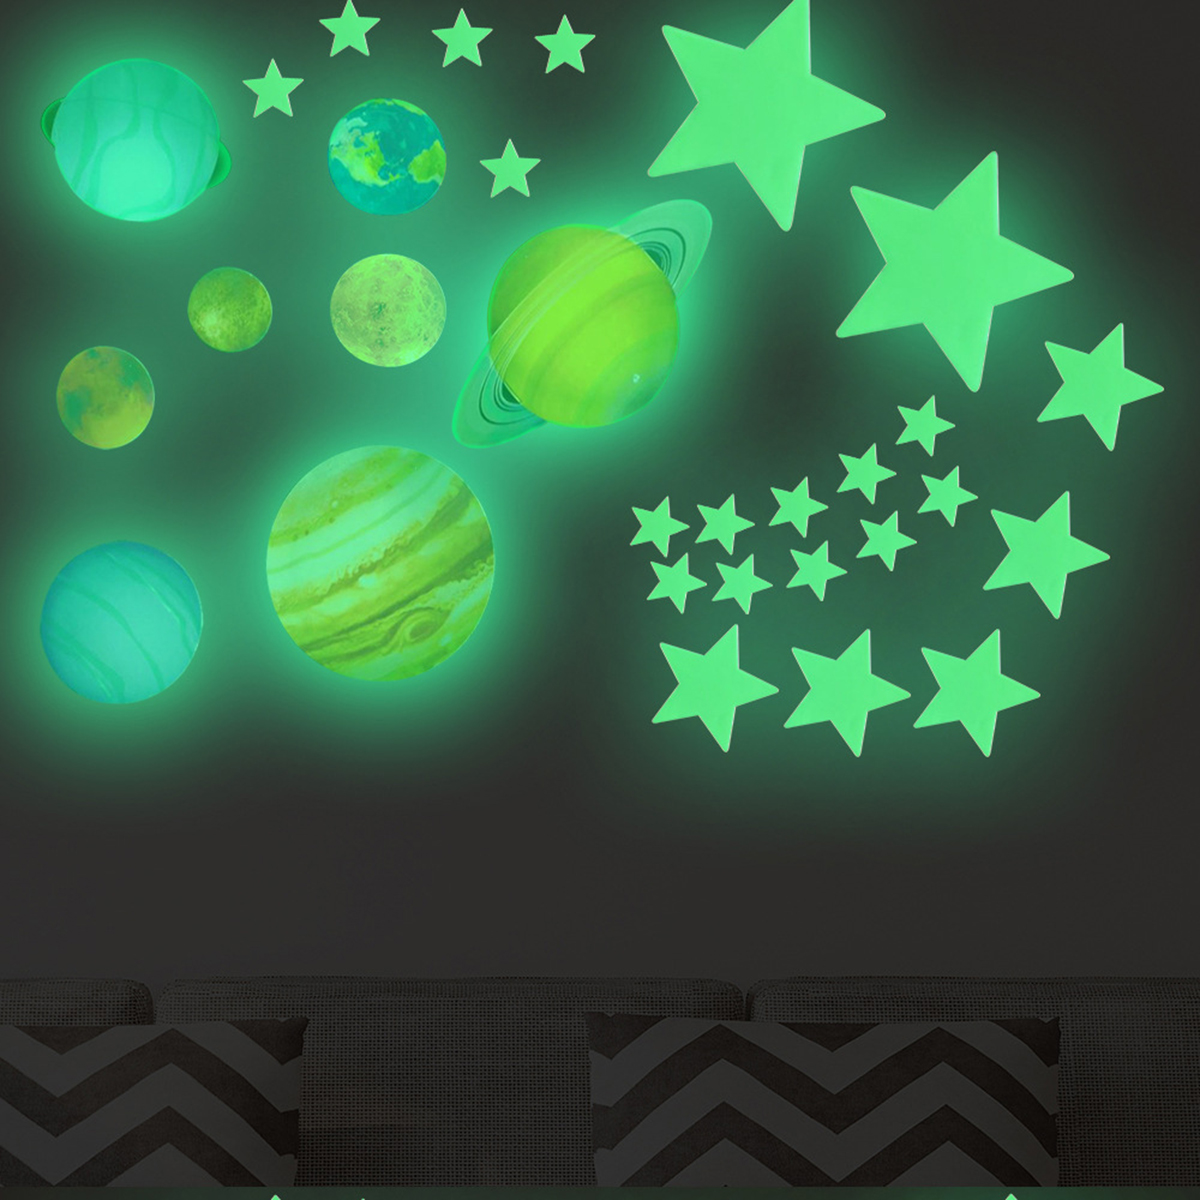 100pcs Star Sticker Glow In Dark Toys Luminous Star Stickers Bedroom Sofa Fluorescent Painting Toy Stickers For Kids Room